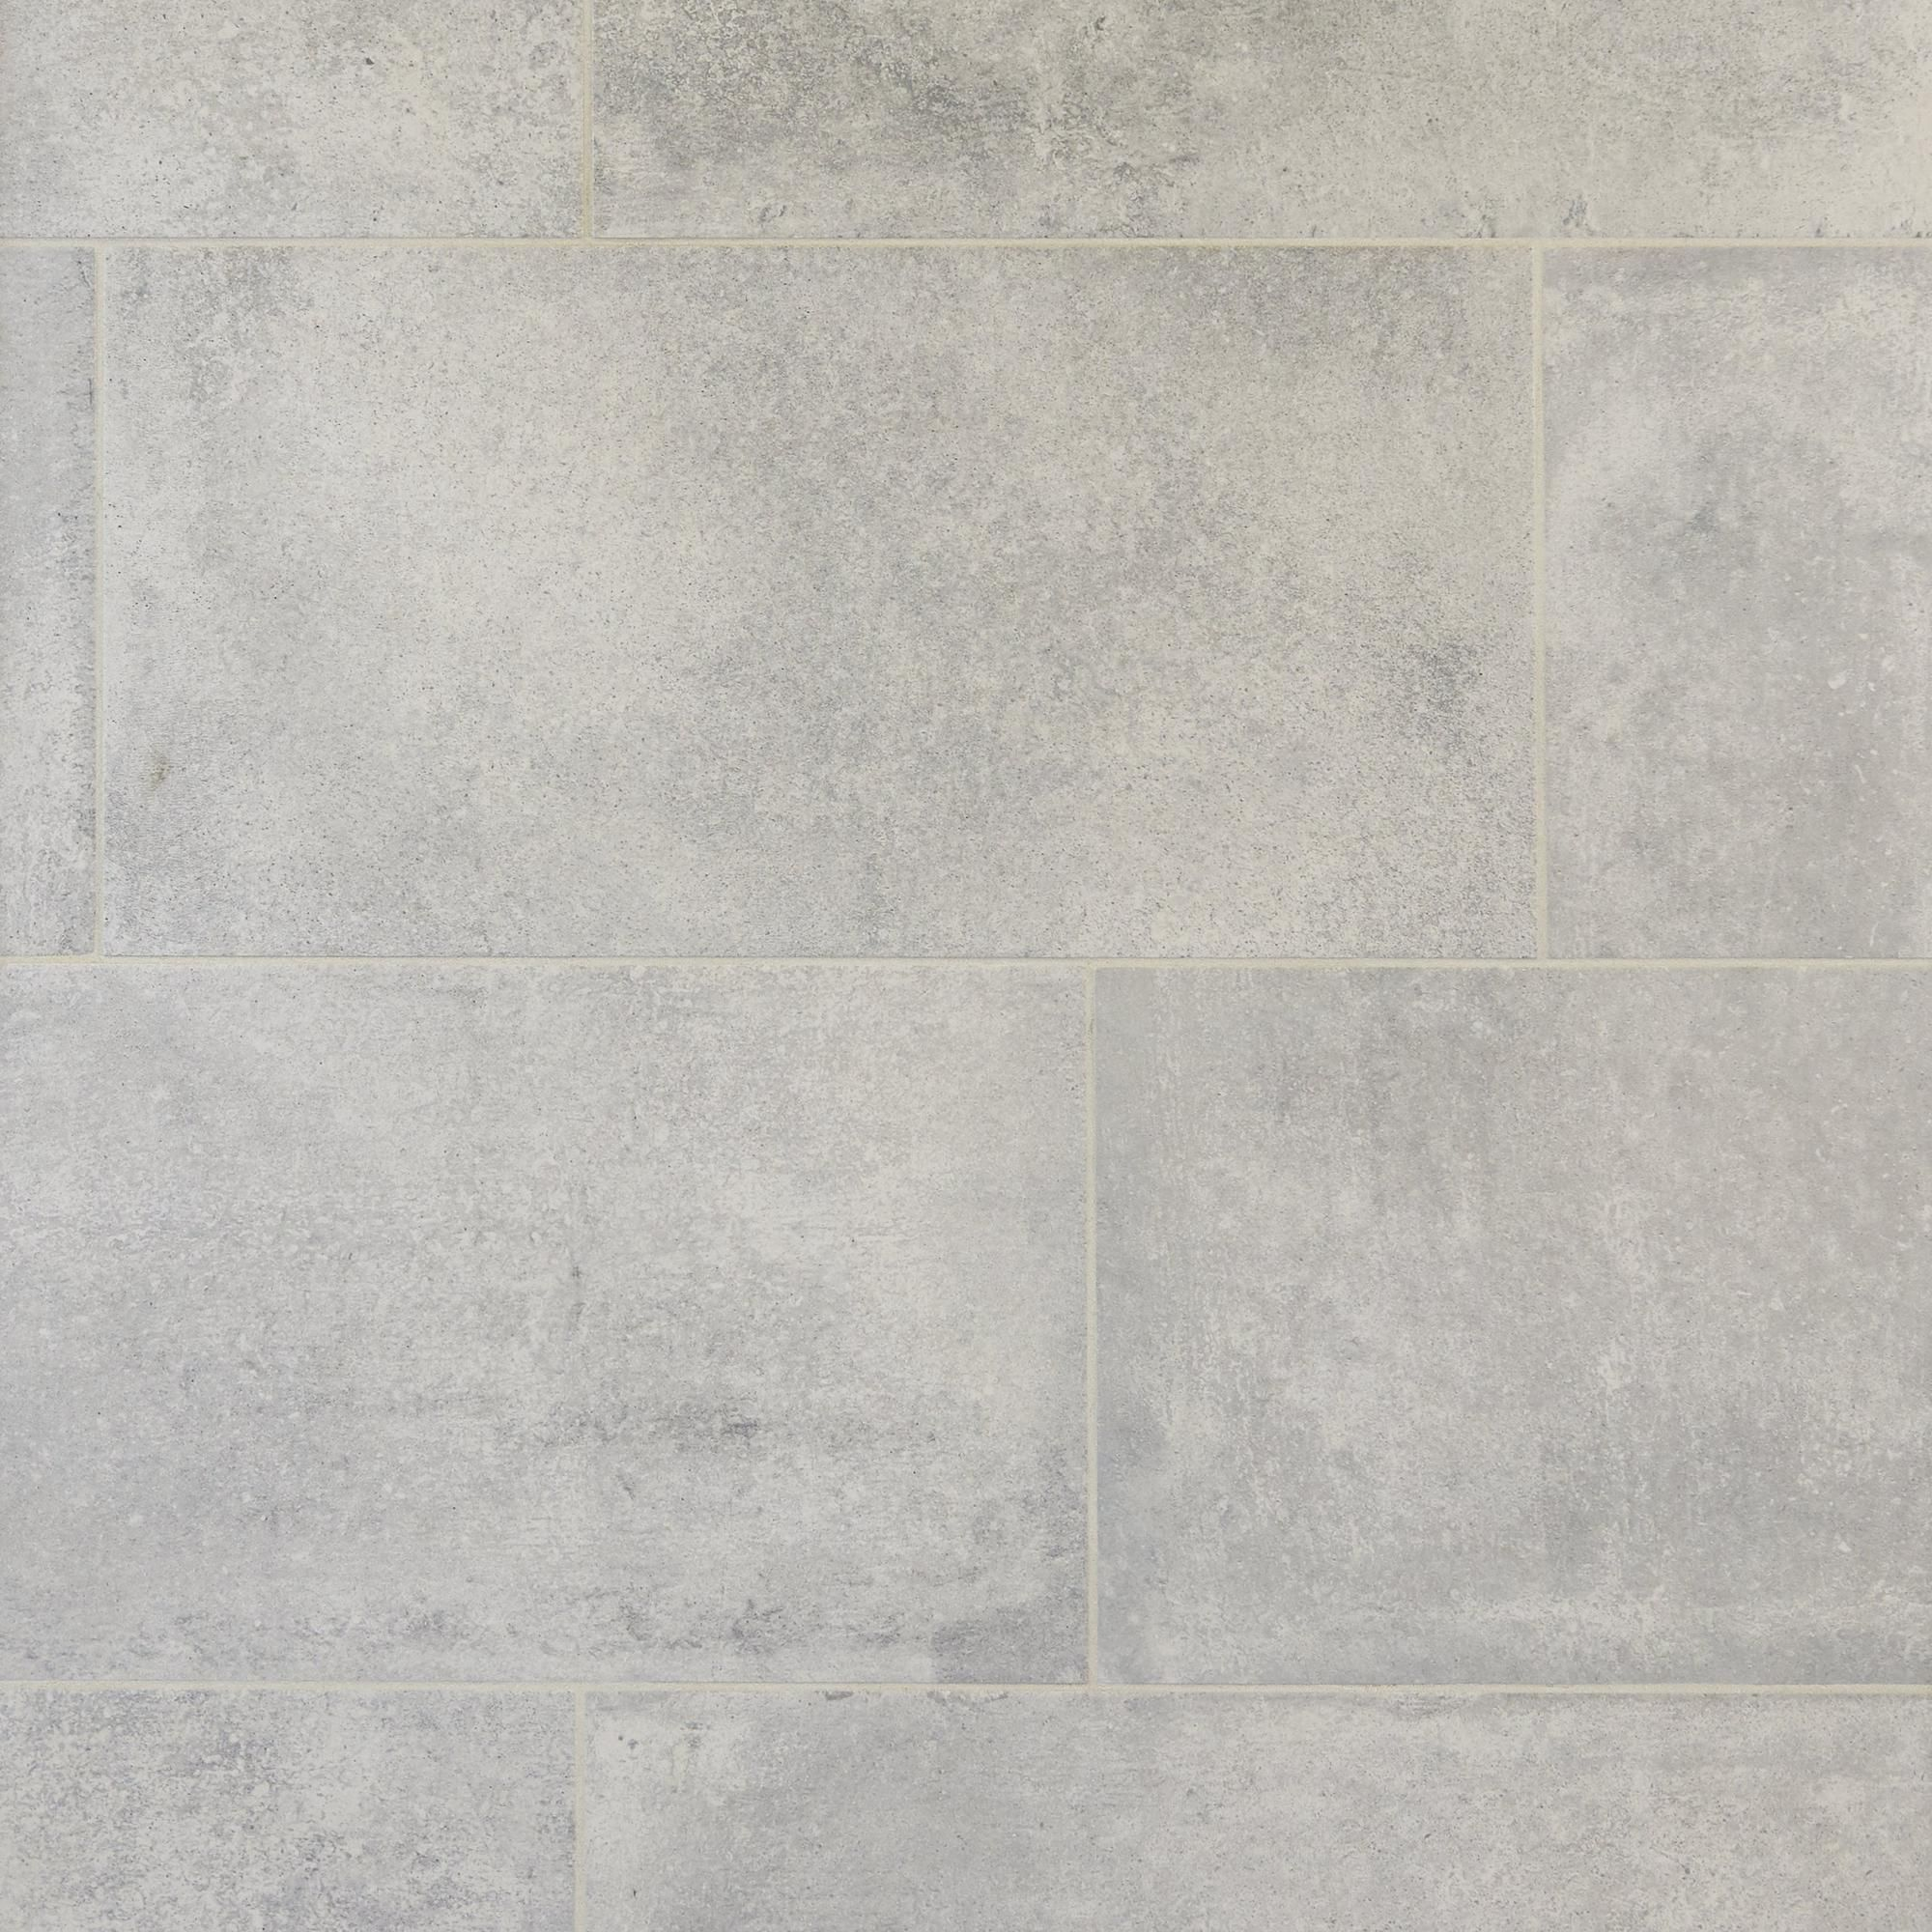 Vogue warm gray porcelain tile porcelain tile porcelain and vogue warm gray porcelain tile 12in x 24in 912102826 floor and dailygadgetfo Image collections